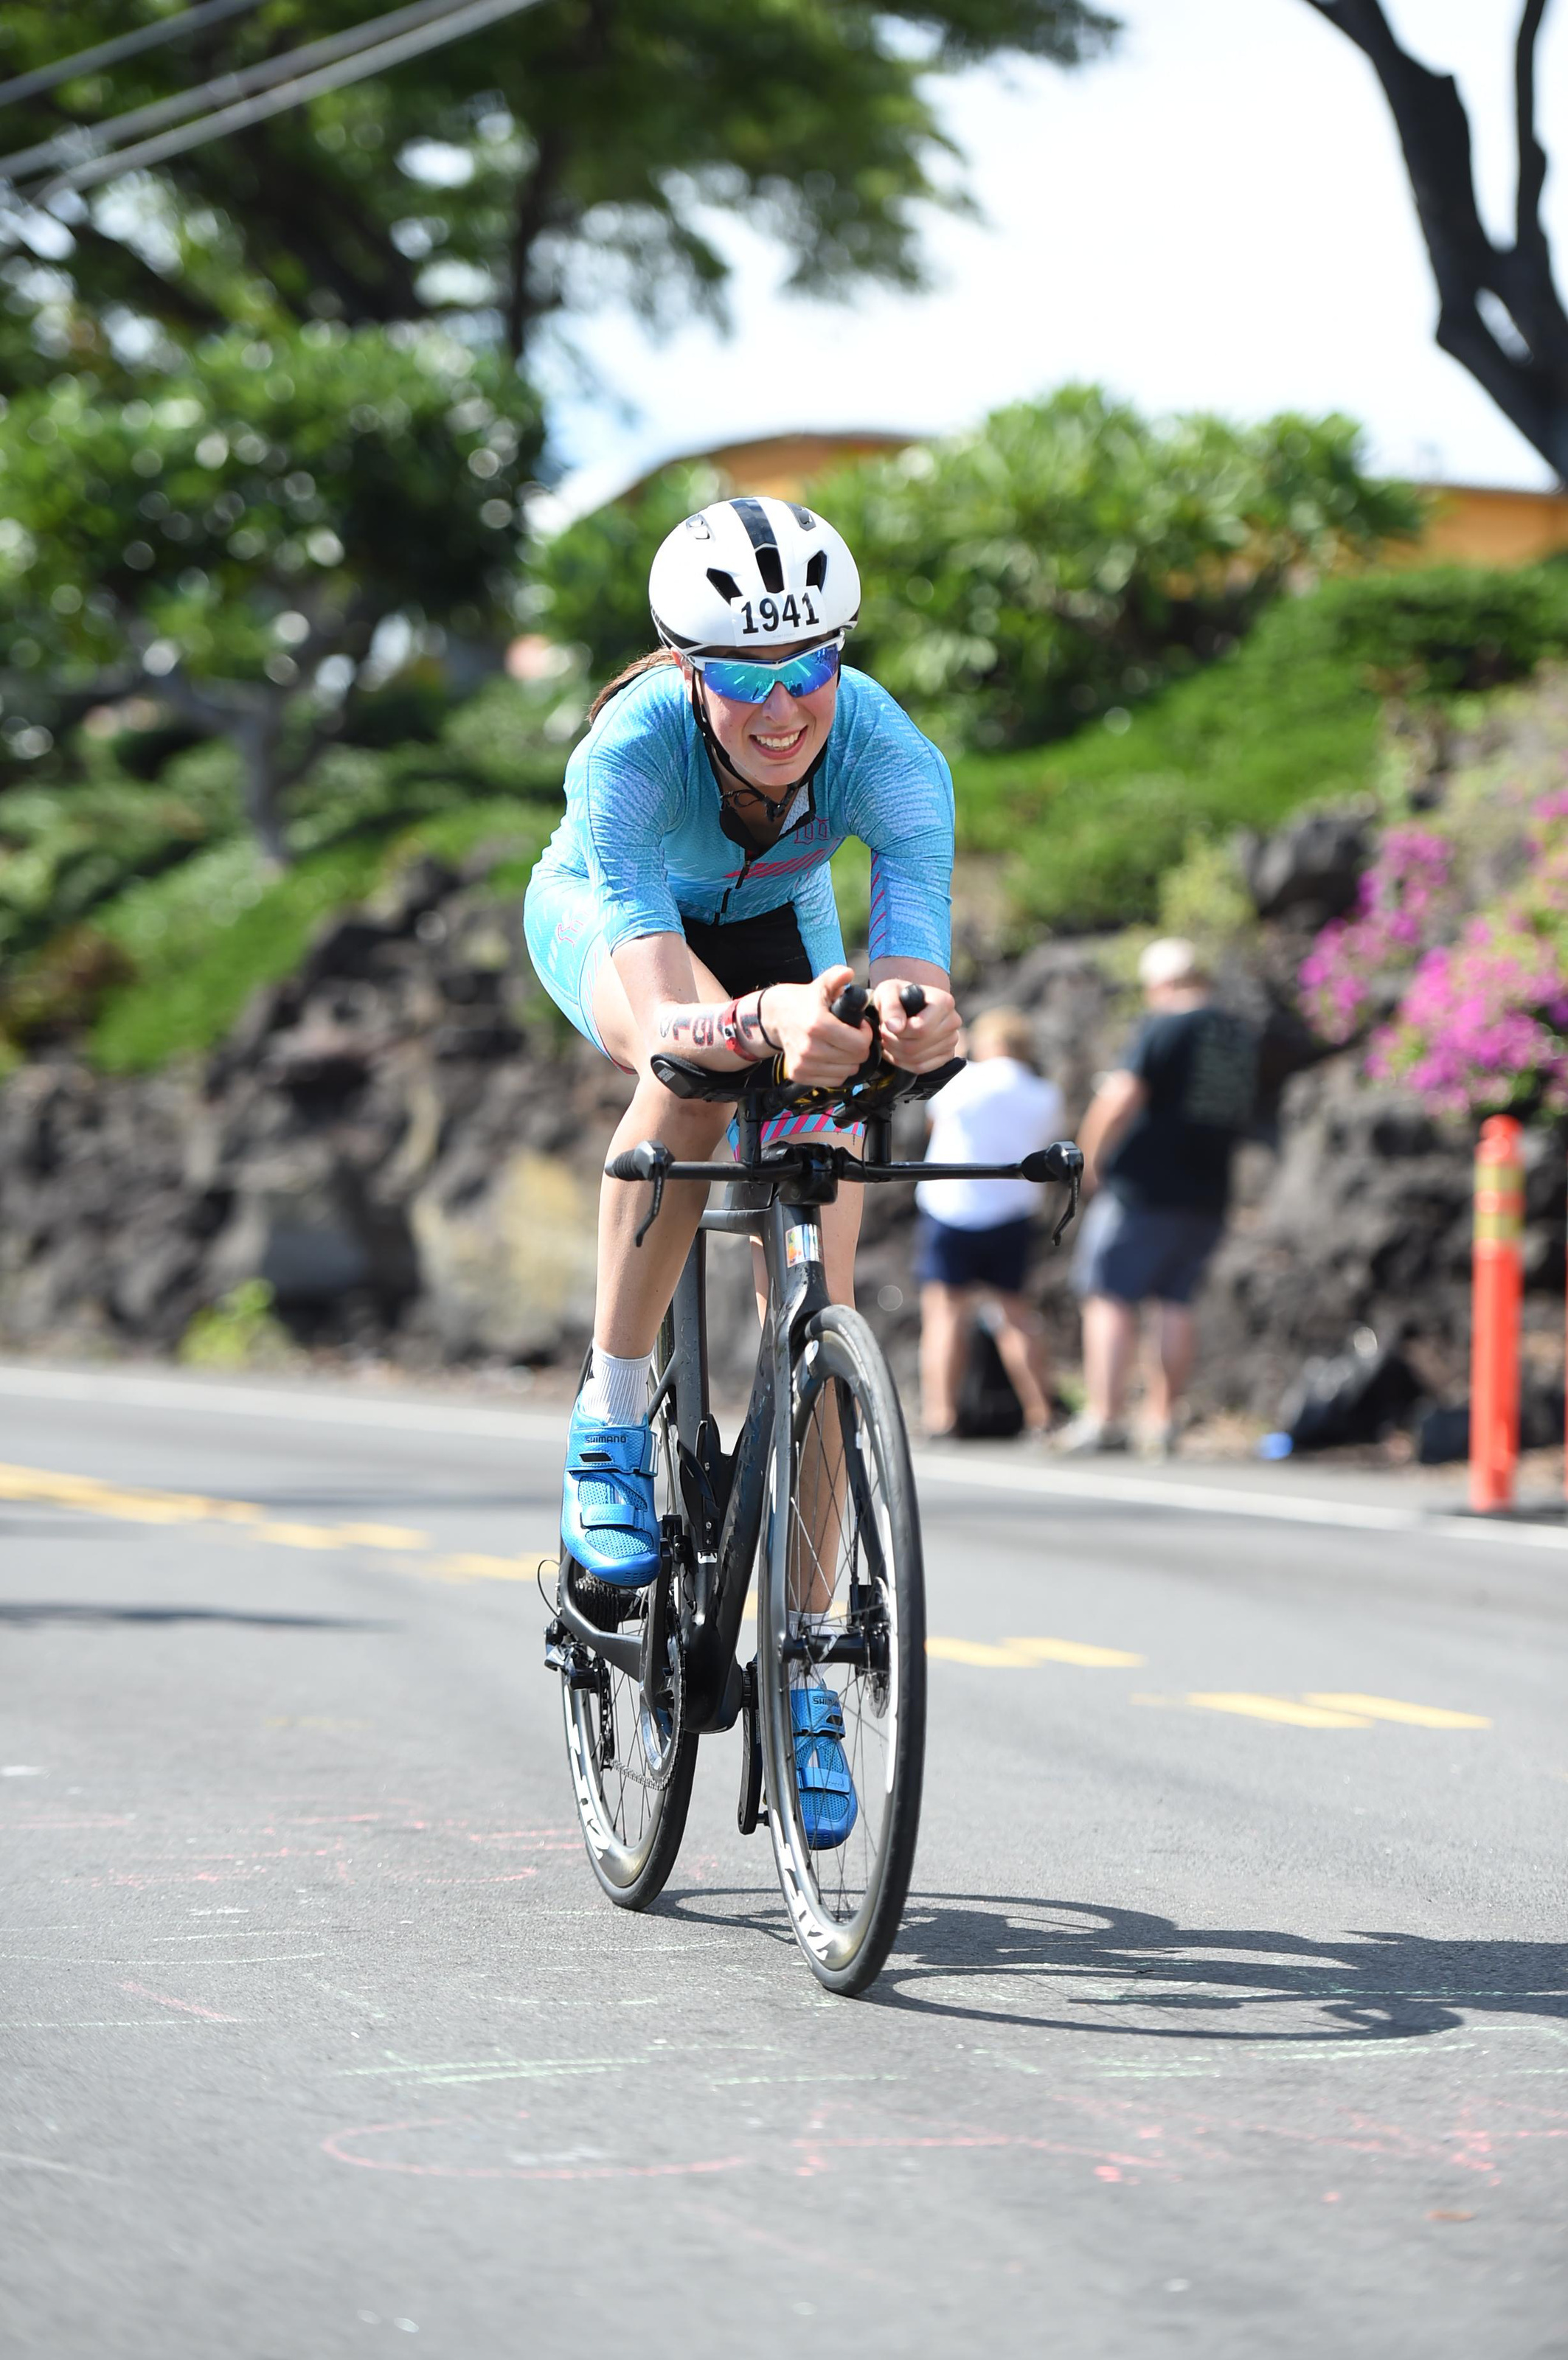 Coach_Terry_Wilson_Pursuit_of_The_Perfect_Race_IRONMAN_World_Championship_Kona_Missy_Norcross_F3.JPG